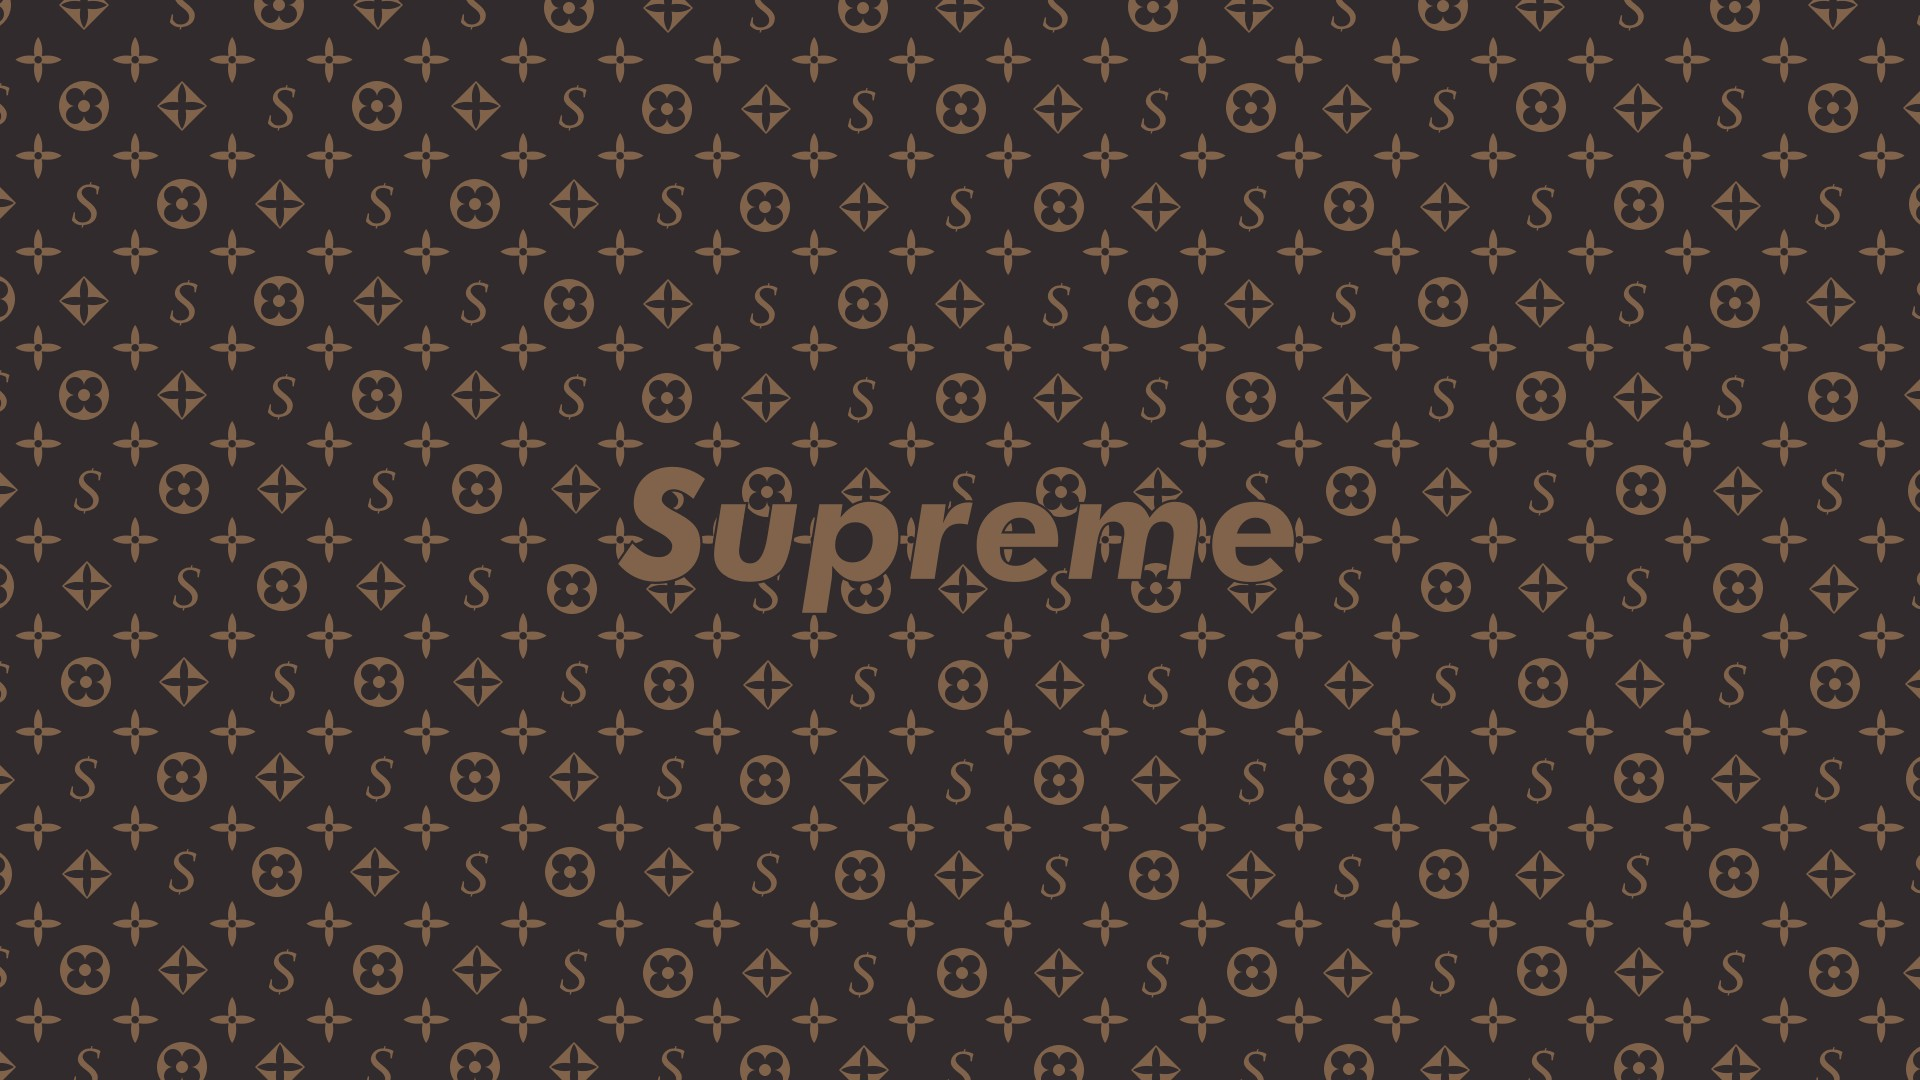 Lv Supreme Wallpaper Iphone X City Of Kenmore Washington